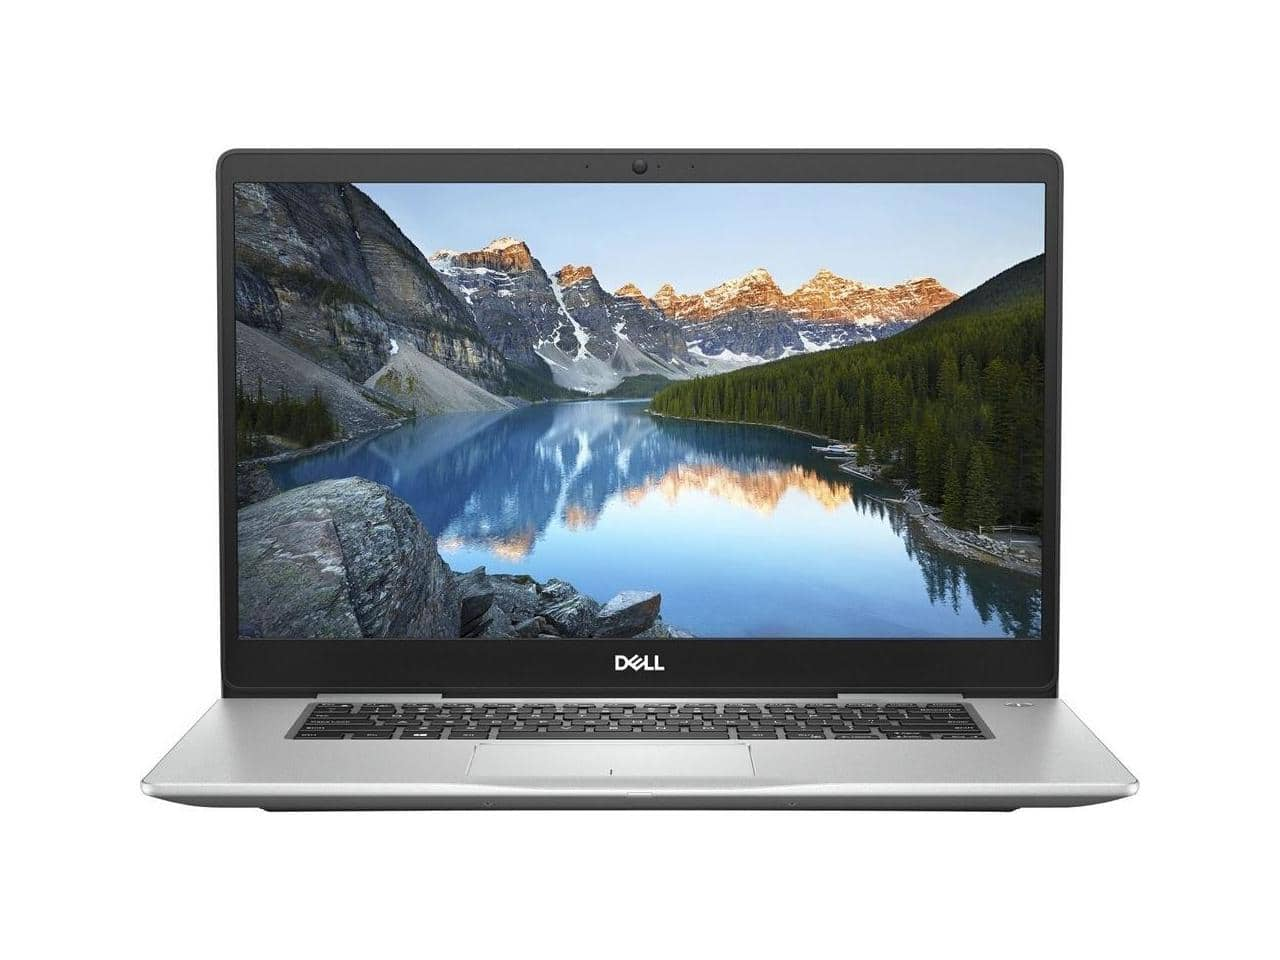 Dell Inspiron 15 7570 Laptop: i5-8250U, 8GB DDR4, 256GB M.2 SSD, MX130 GPU $639.99 + Free Shipping